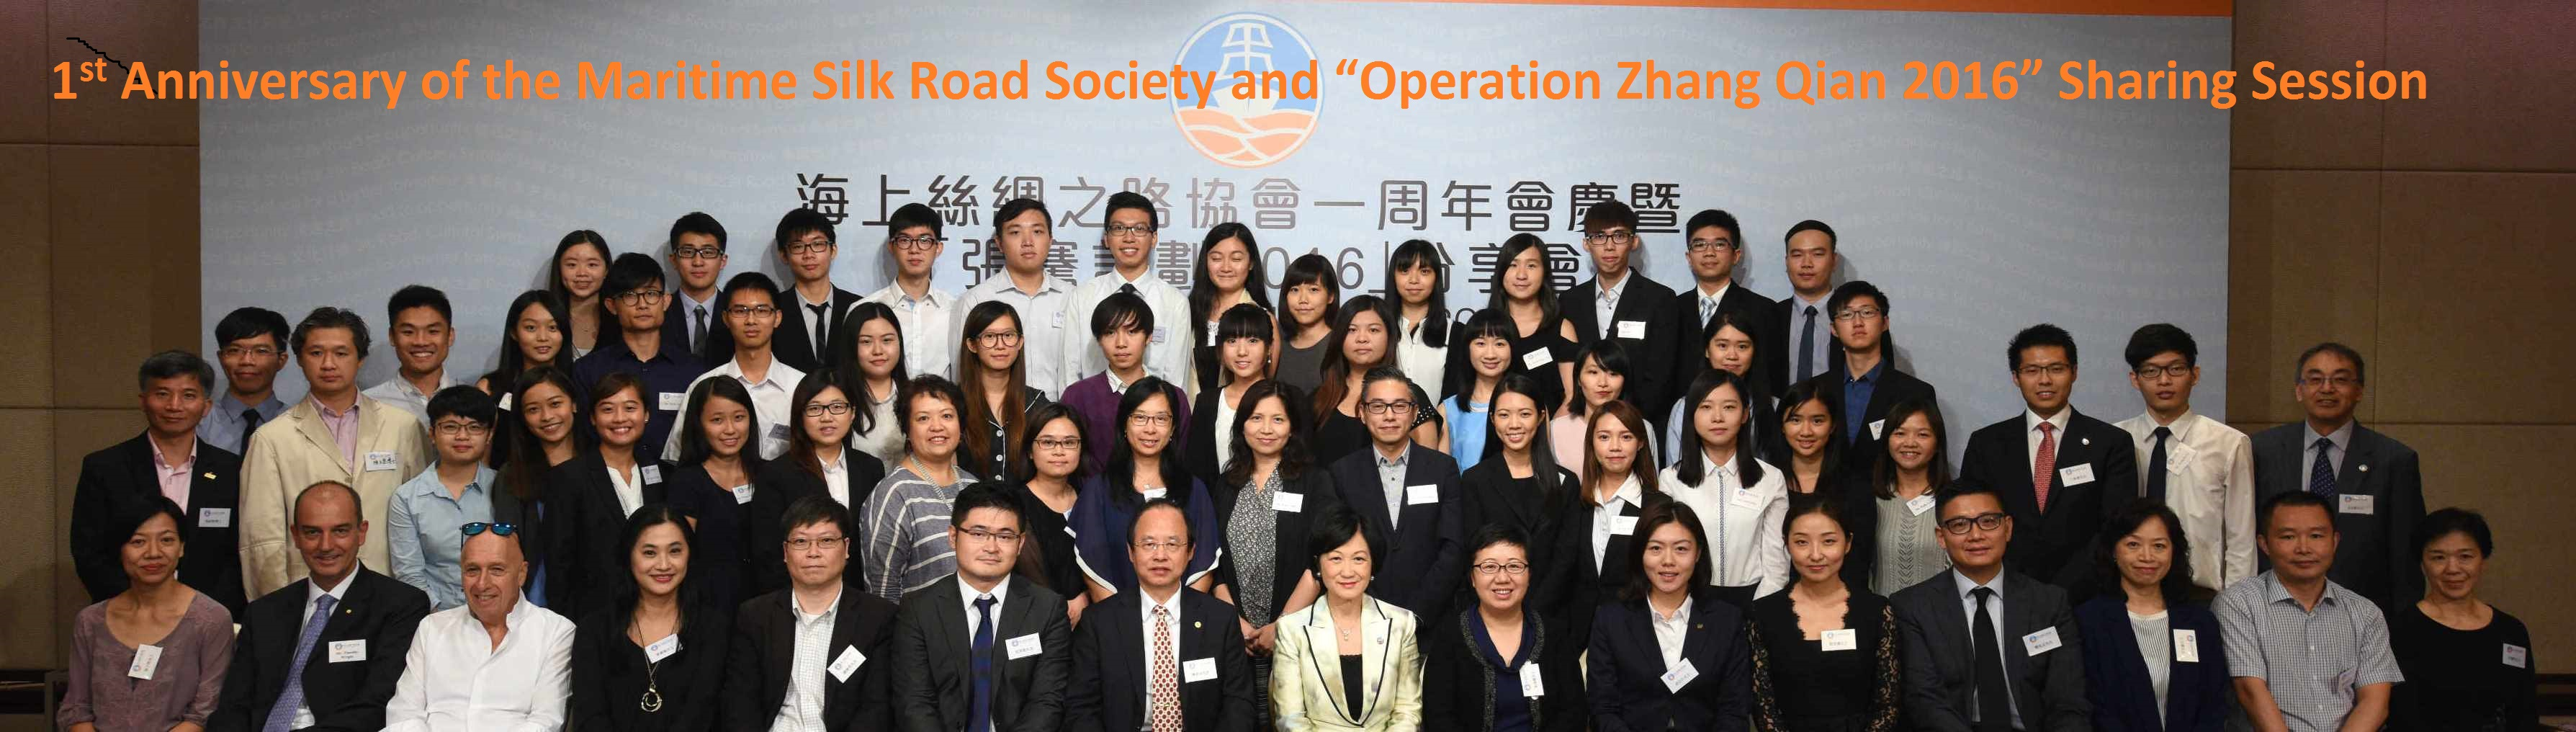 "1st Anniversary of the Maritime Silk Road Society and ""Operation Zhang Qian 2016"" Sharing Session"